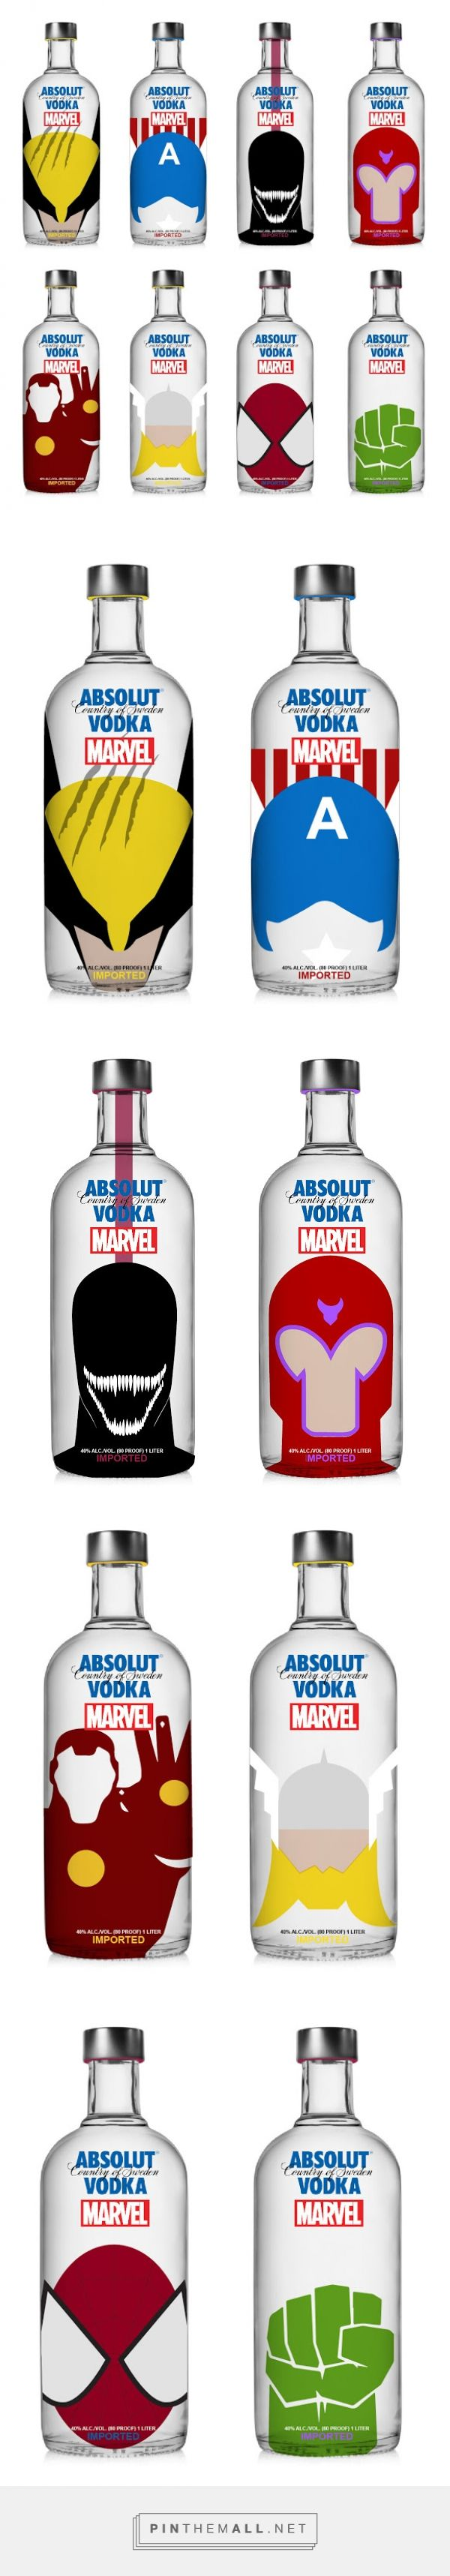 Absolut Vodka x Marvel Concept designed by Krizia Soetaniman - http://www.packagingoftheworld.com/2015/11/absolut-vodka-x-marvel-concept.html